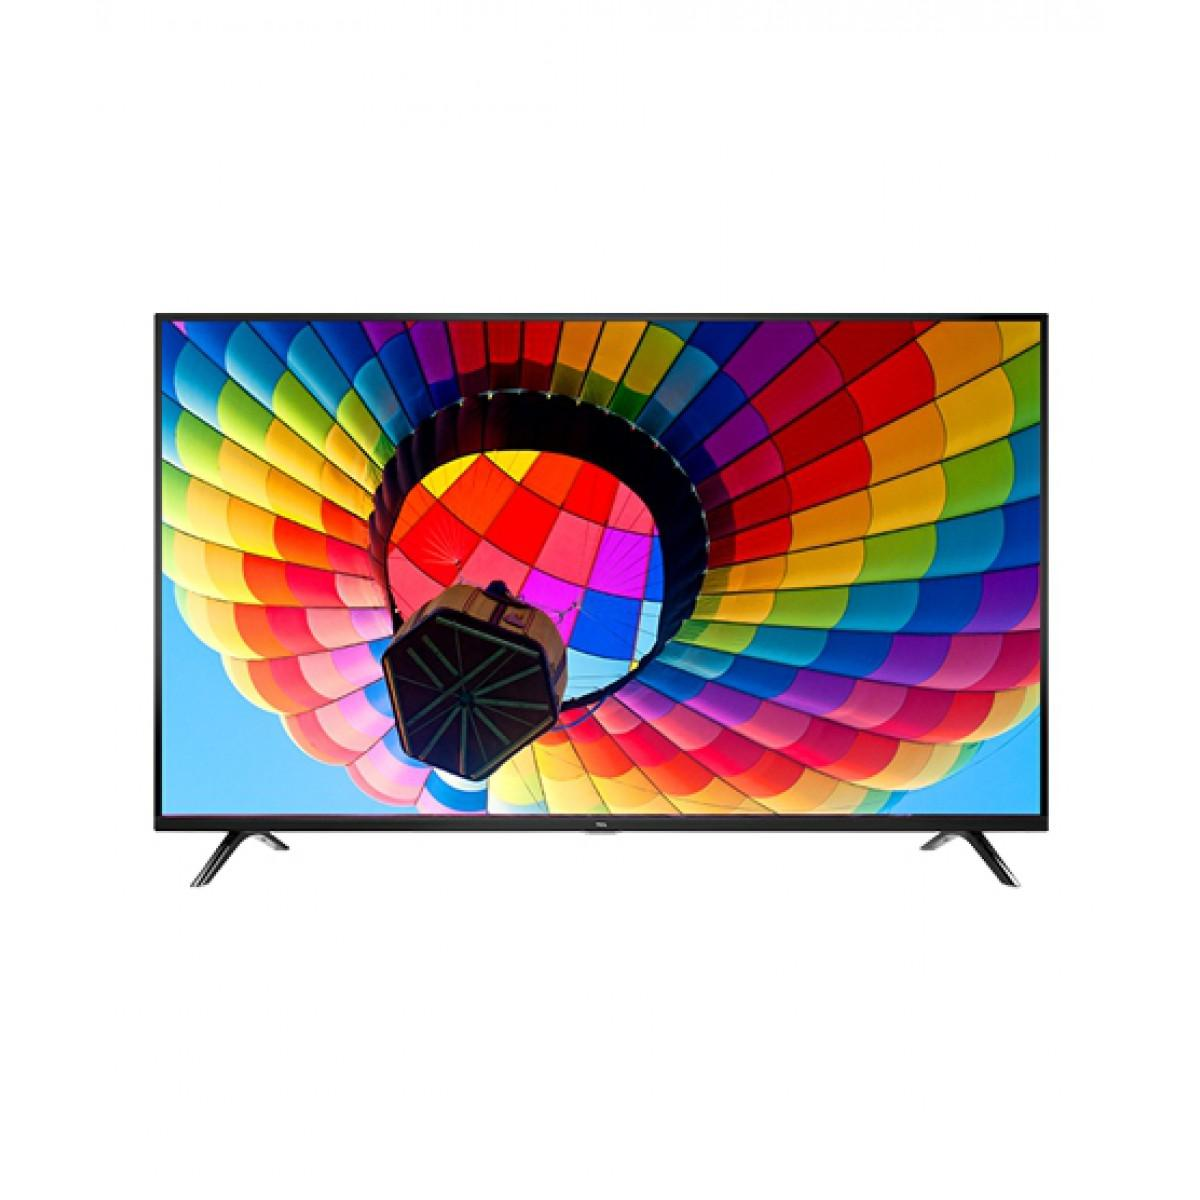 Tcl Led Tv Price In Pakistan Buy Online Today Darazpk